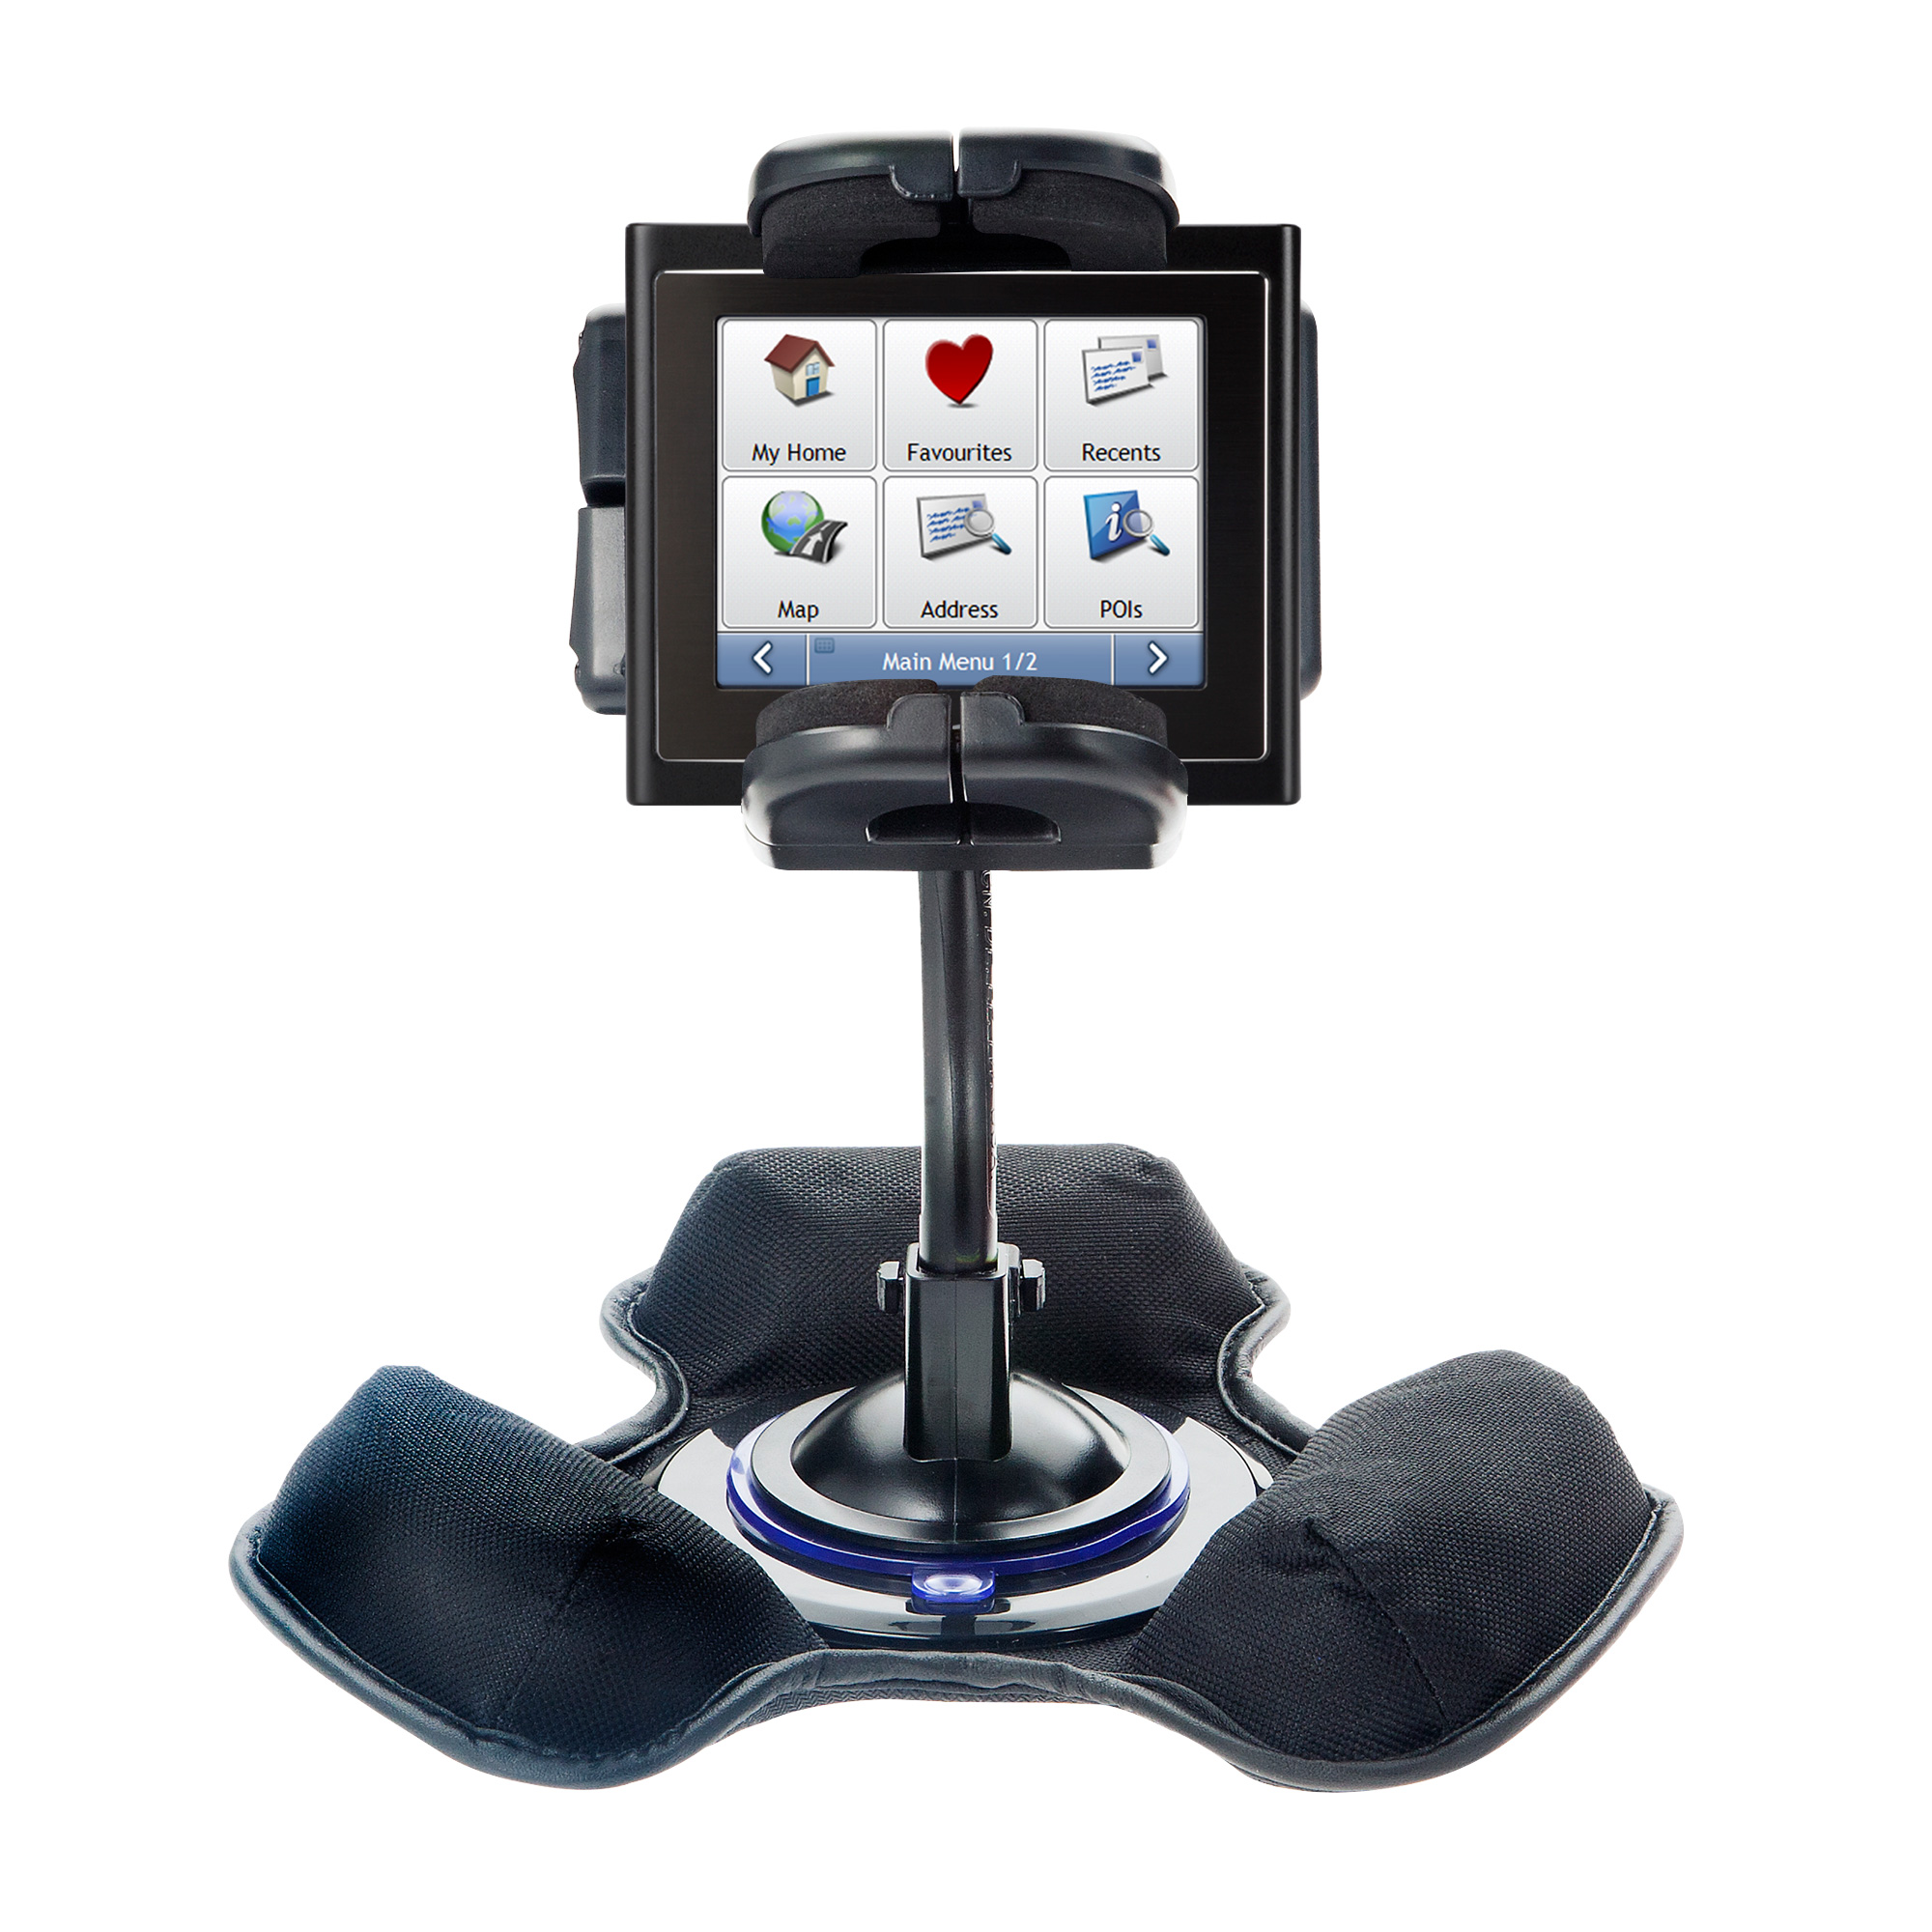 Car / Truck Vehicle Holder Mounting System for Mio Moov 200 210 Includes Unique Flexible Windshield Suction and Universal Dashboard Mount Options